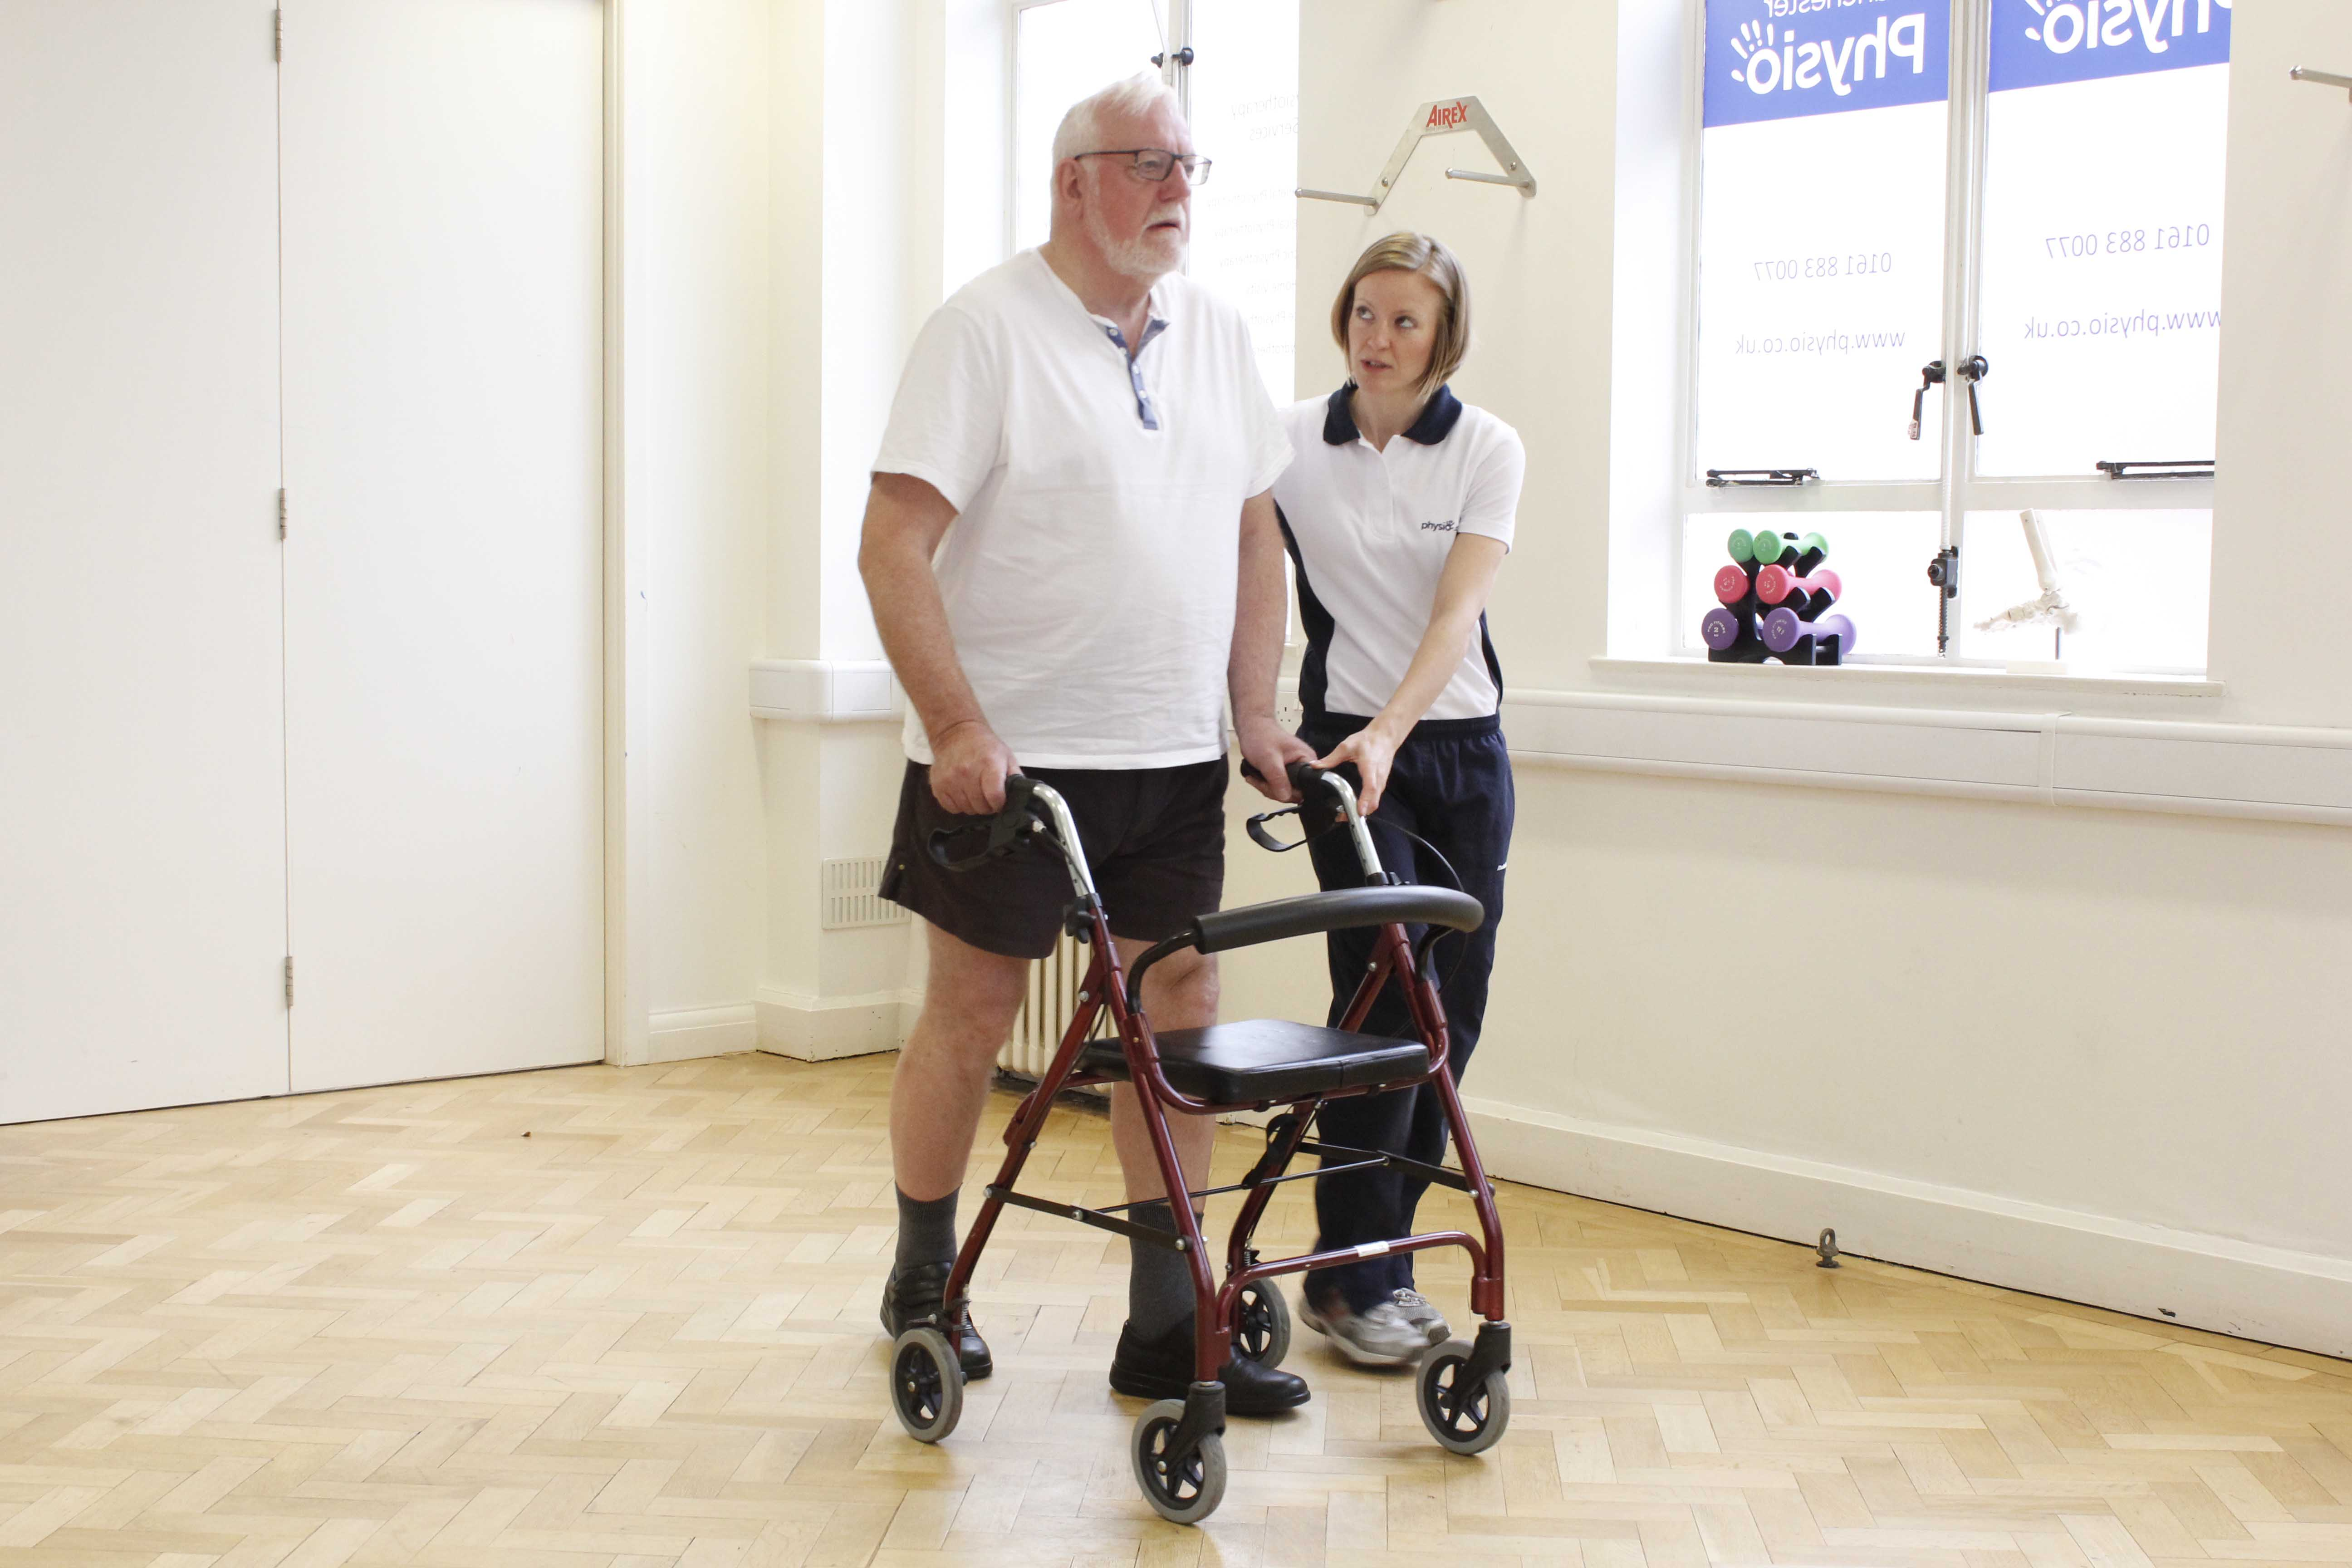 Mobility exercises using a rolator frame and close supervision of a physiotherapist